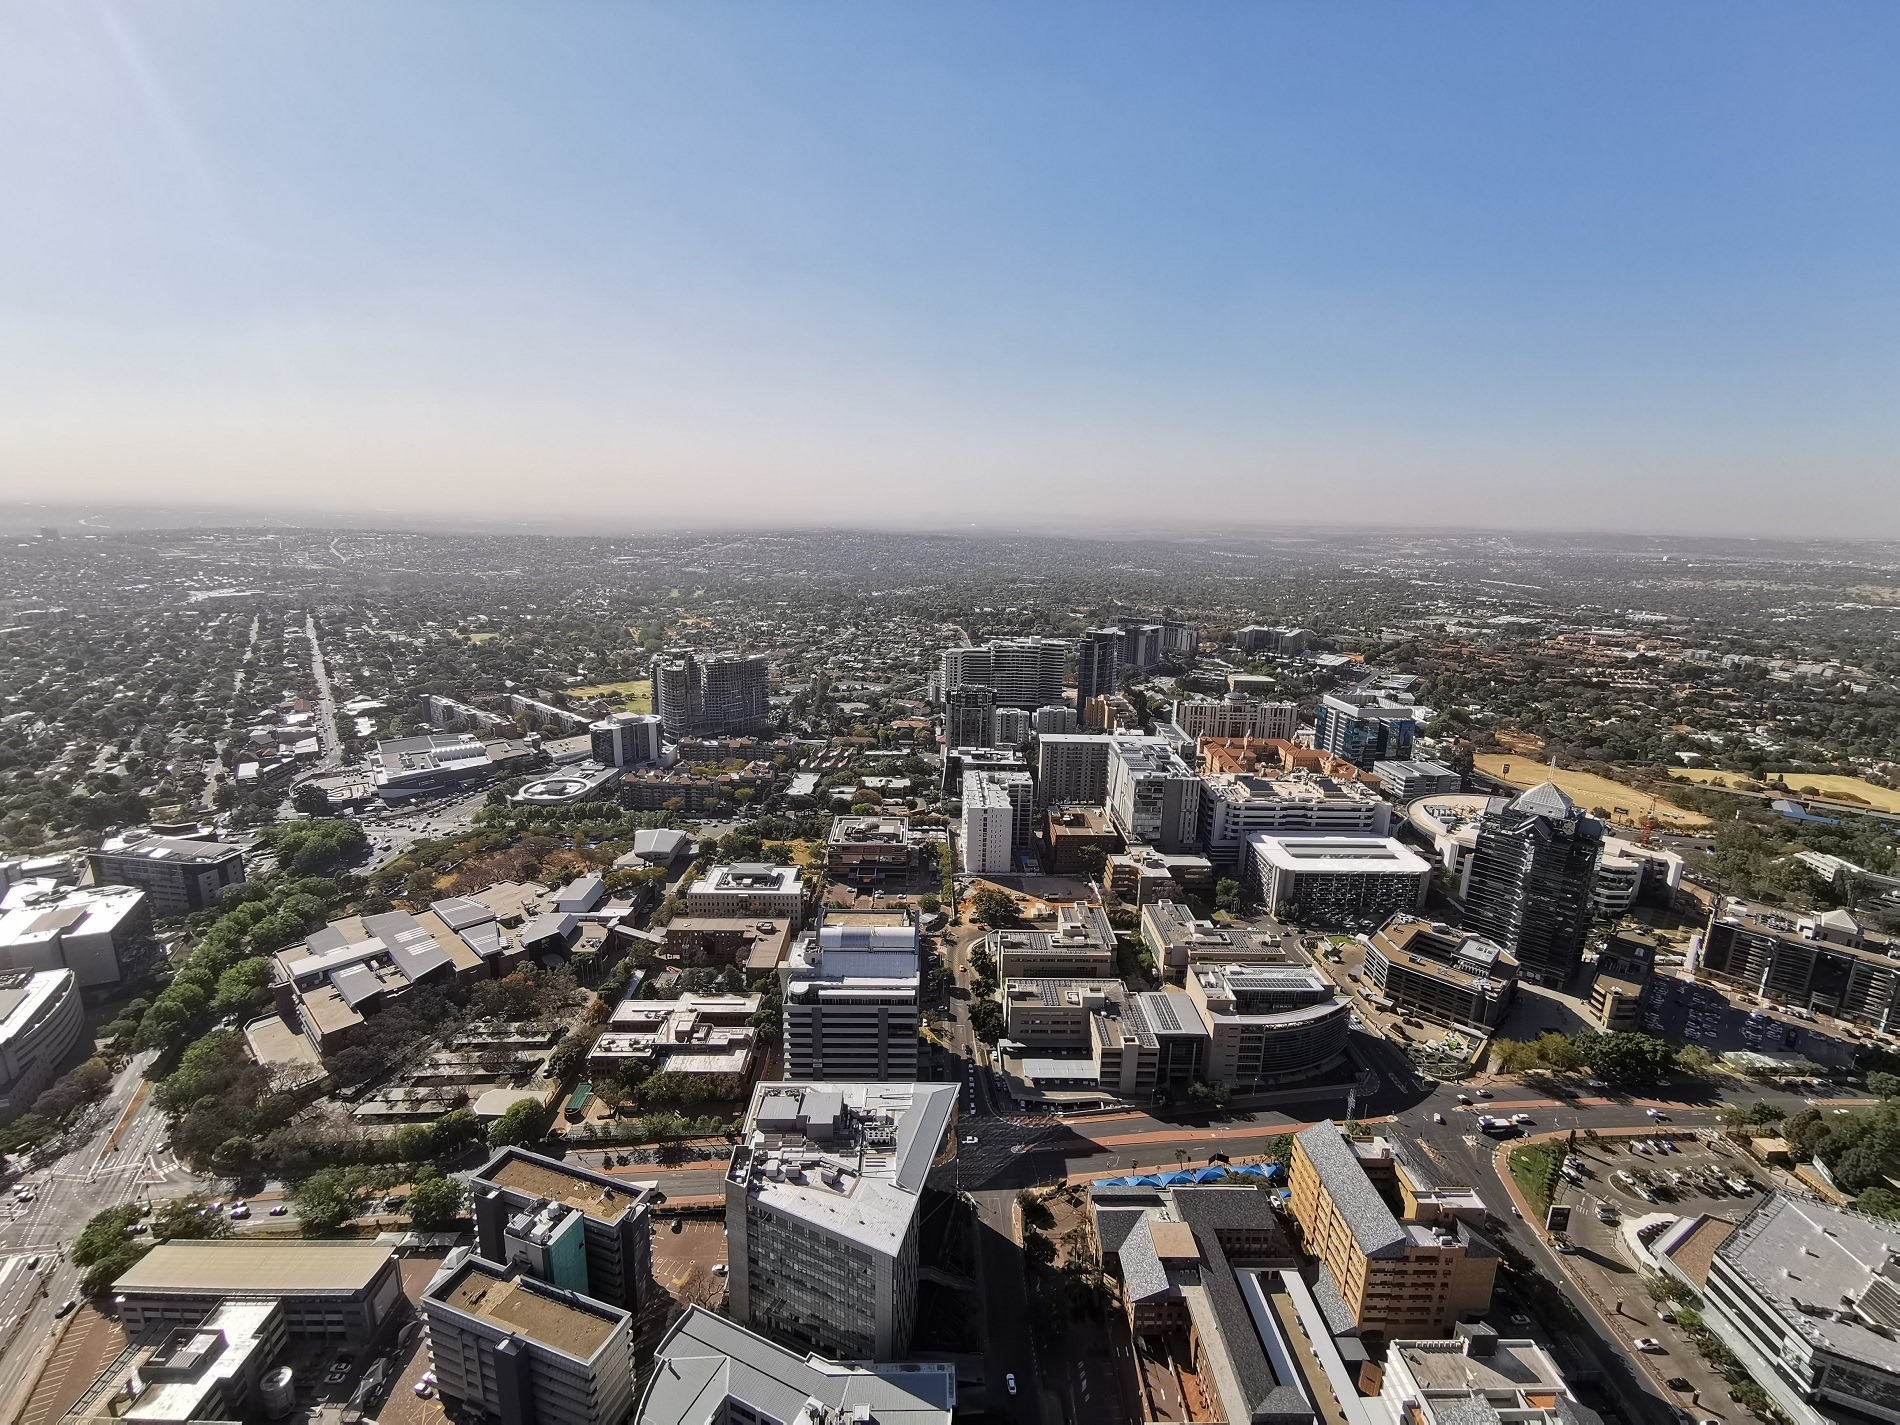 Johannesburg from up high